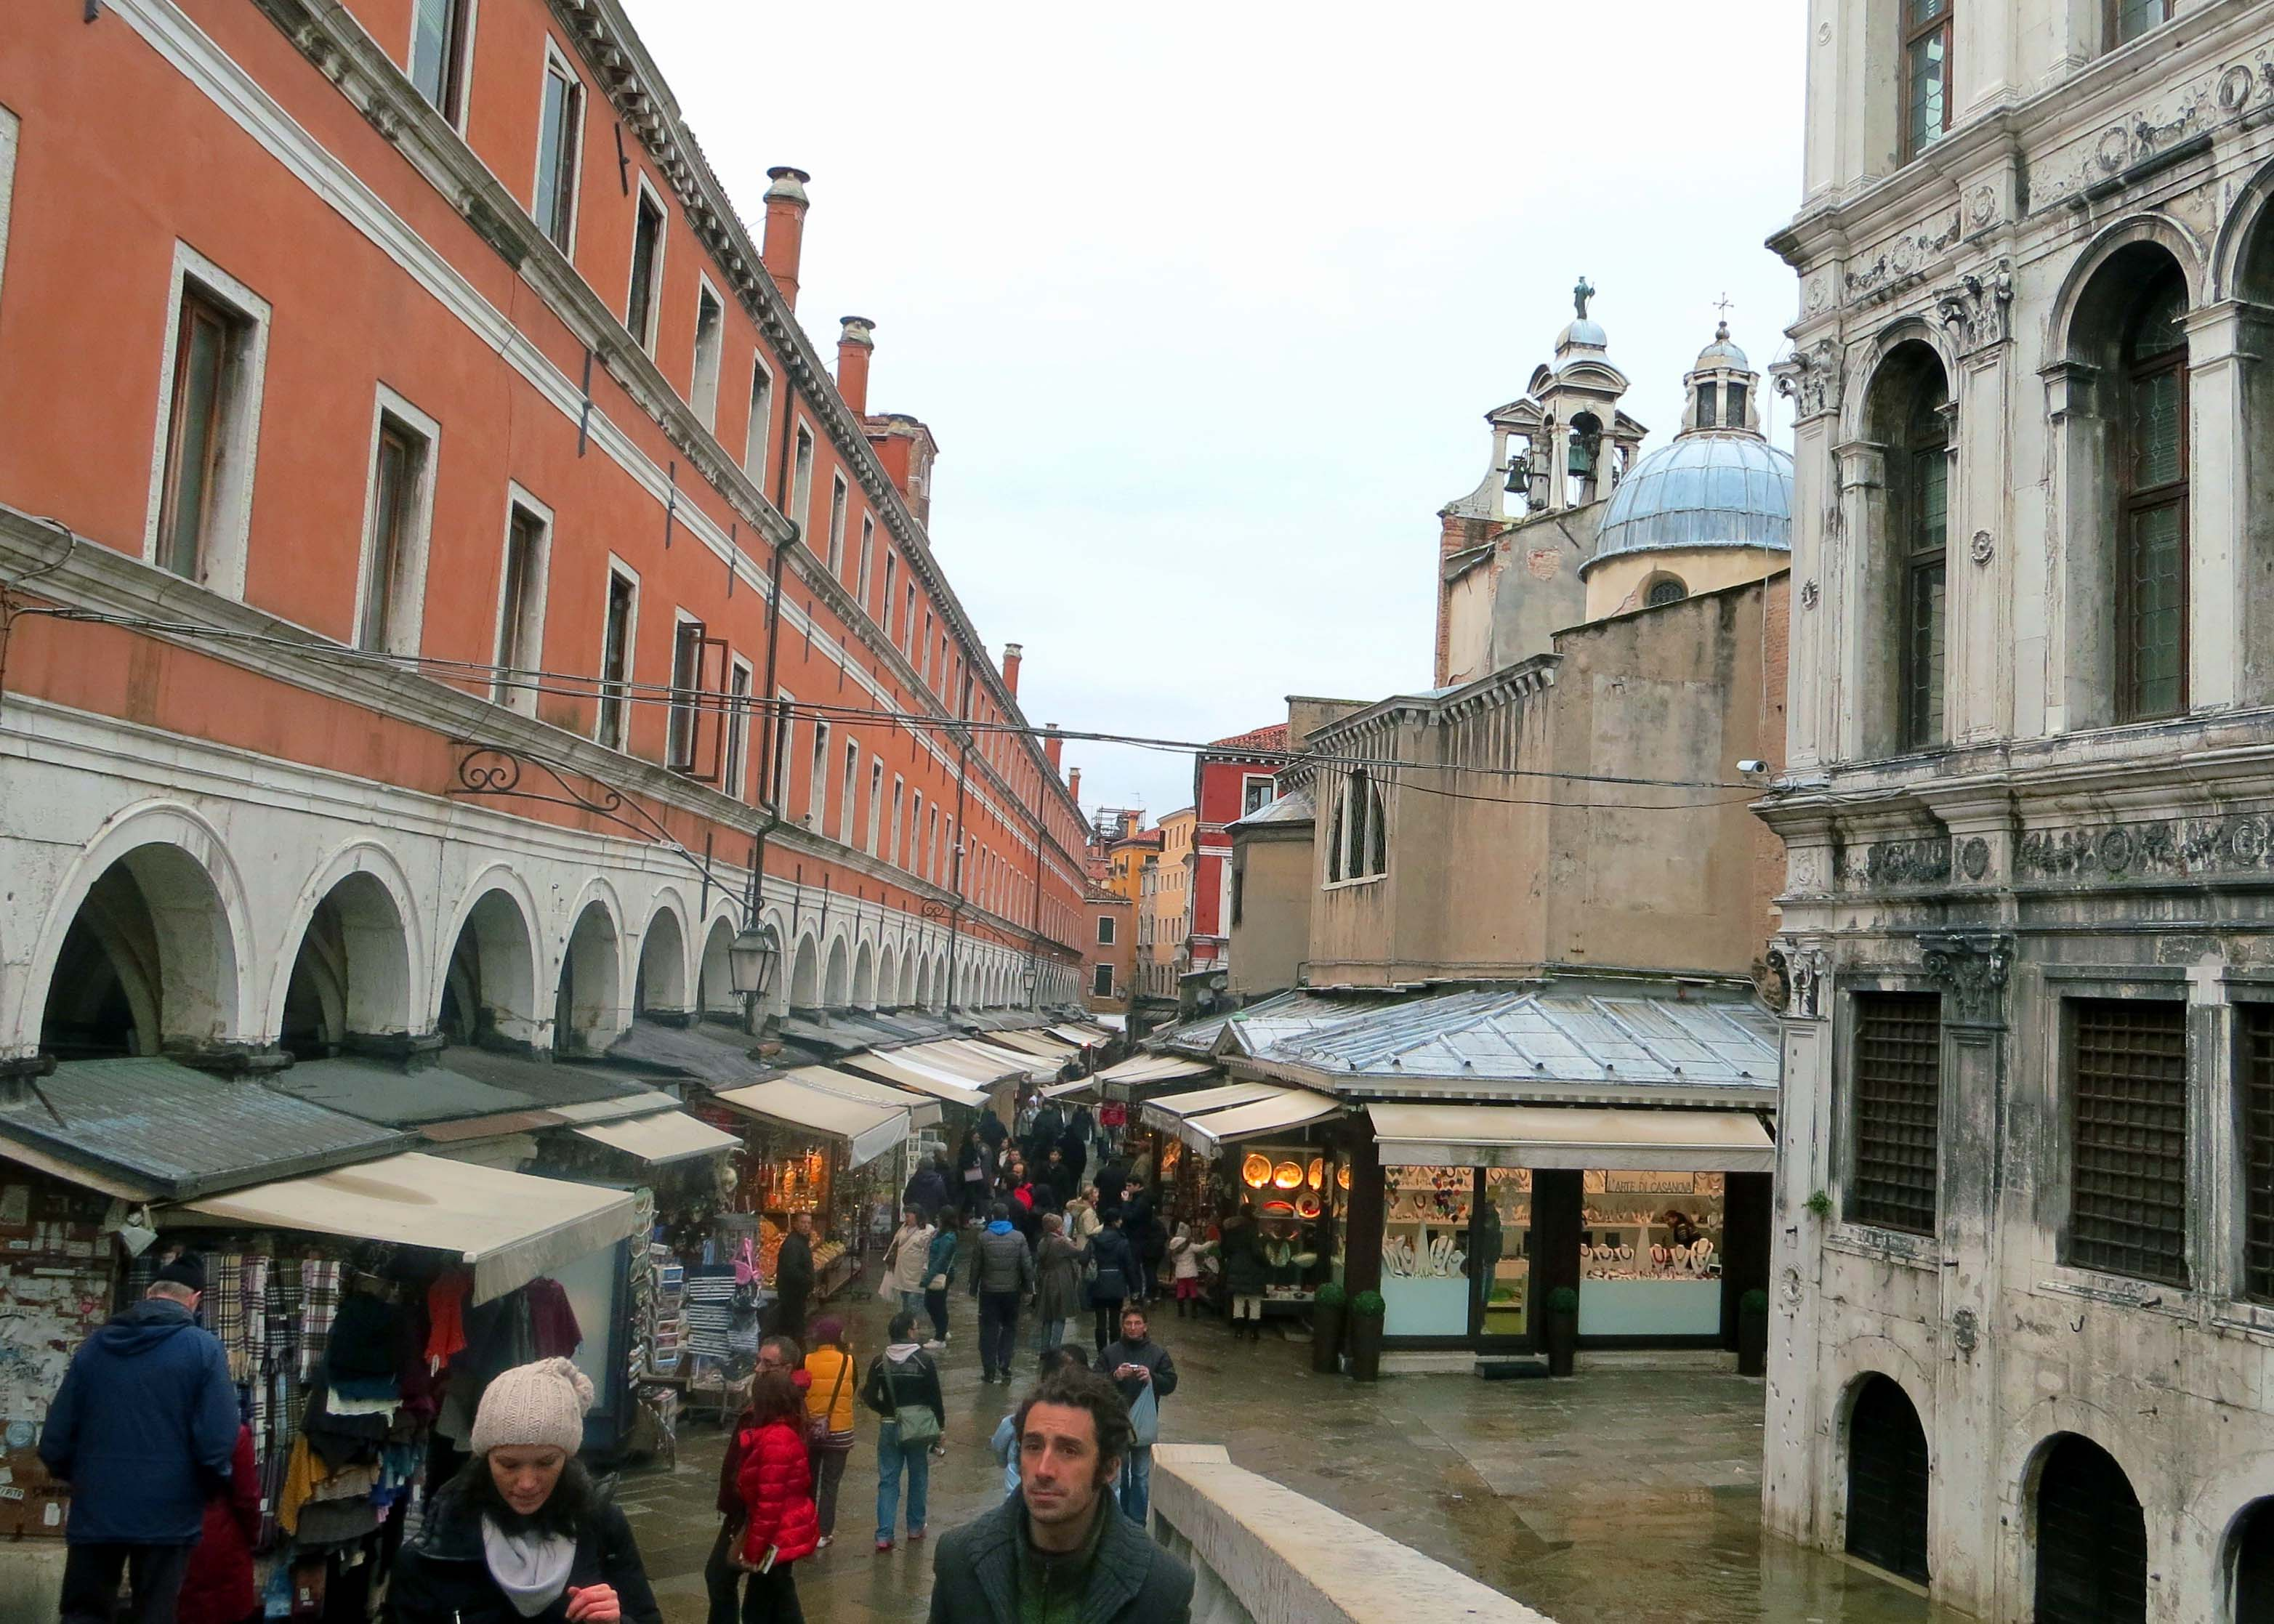 We found this open air market just off of the Rialto Bridge. Even on a cold, rainy day, it was packed with people. I suspect there was a fair amount of Christmas shopping going on since it was mid-December.